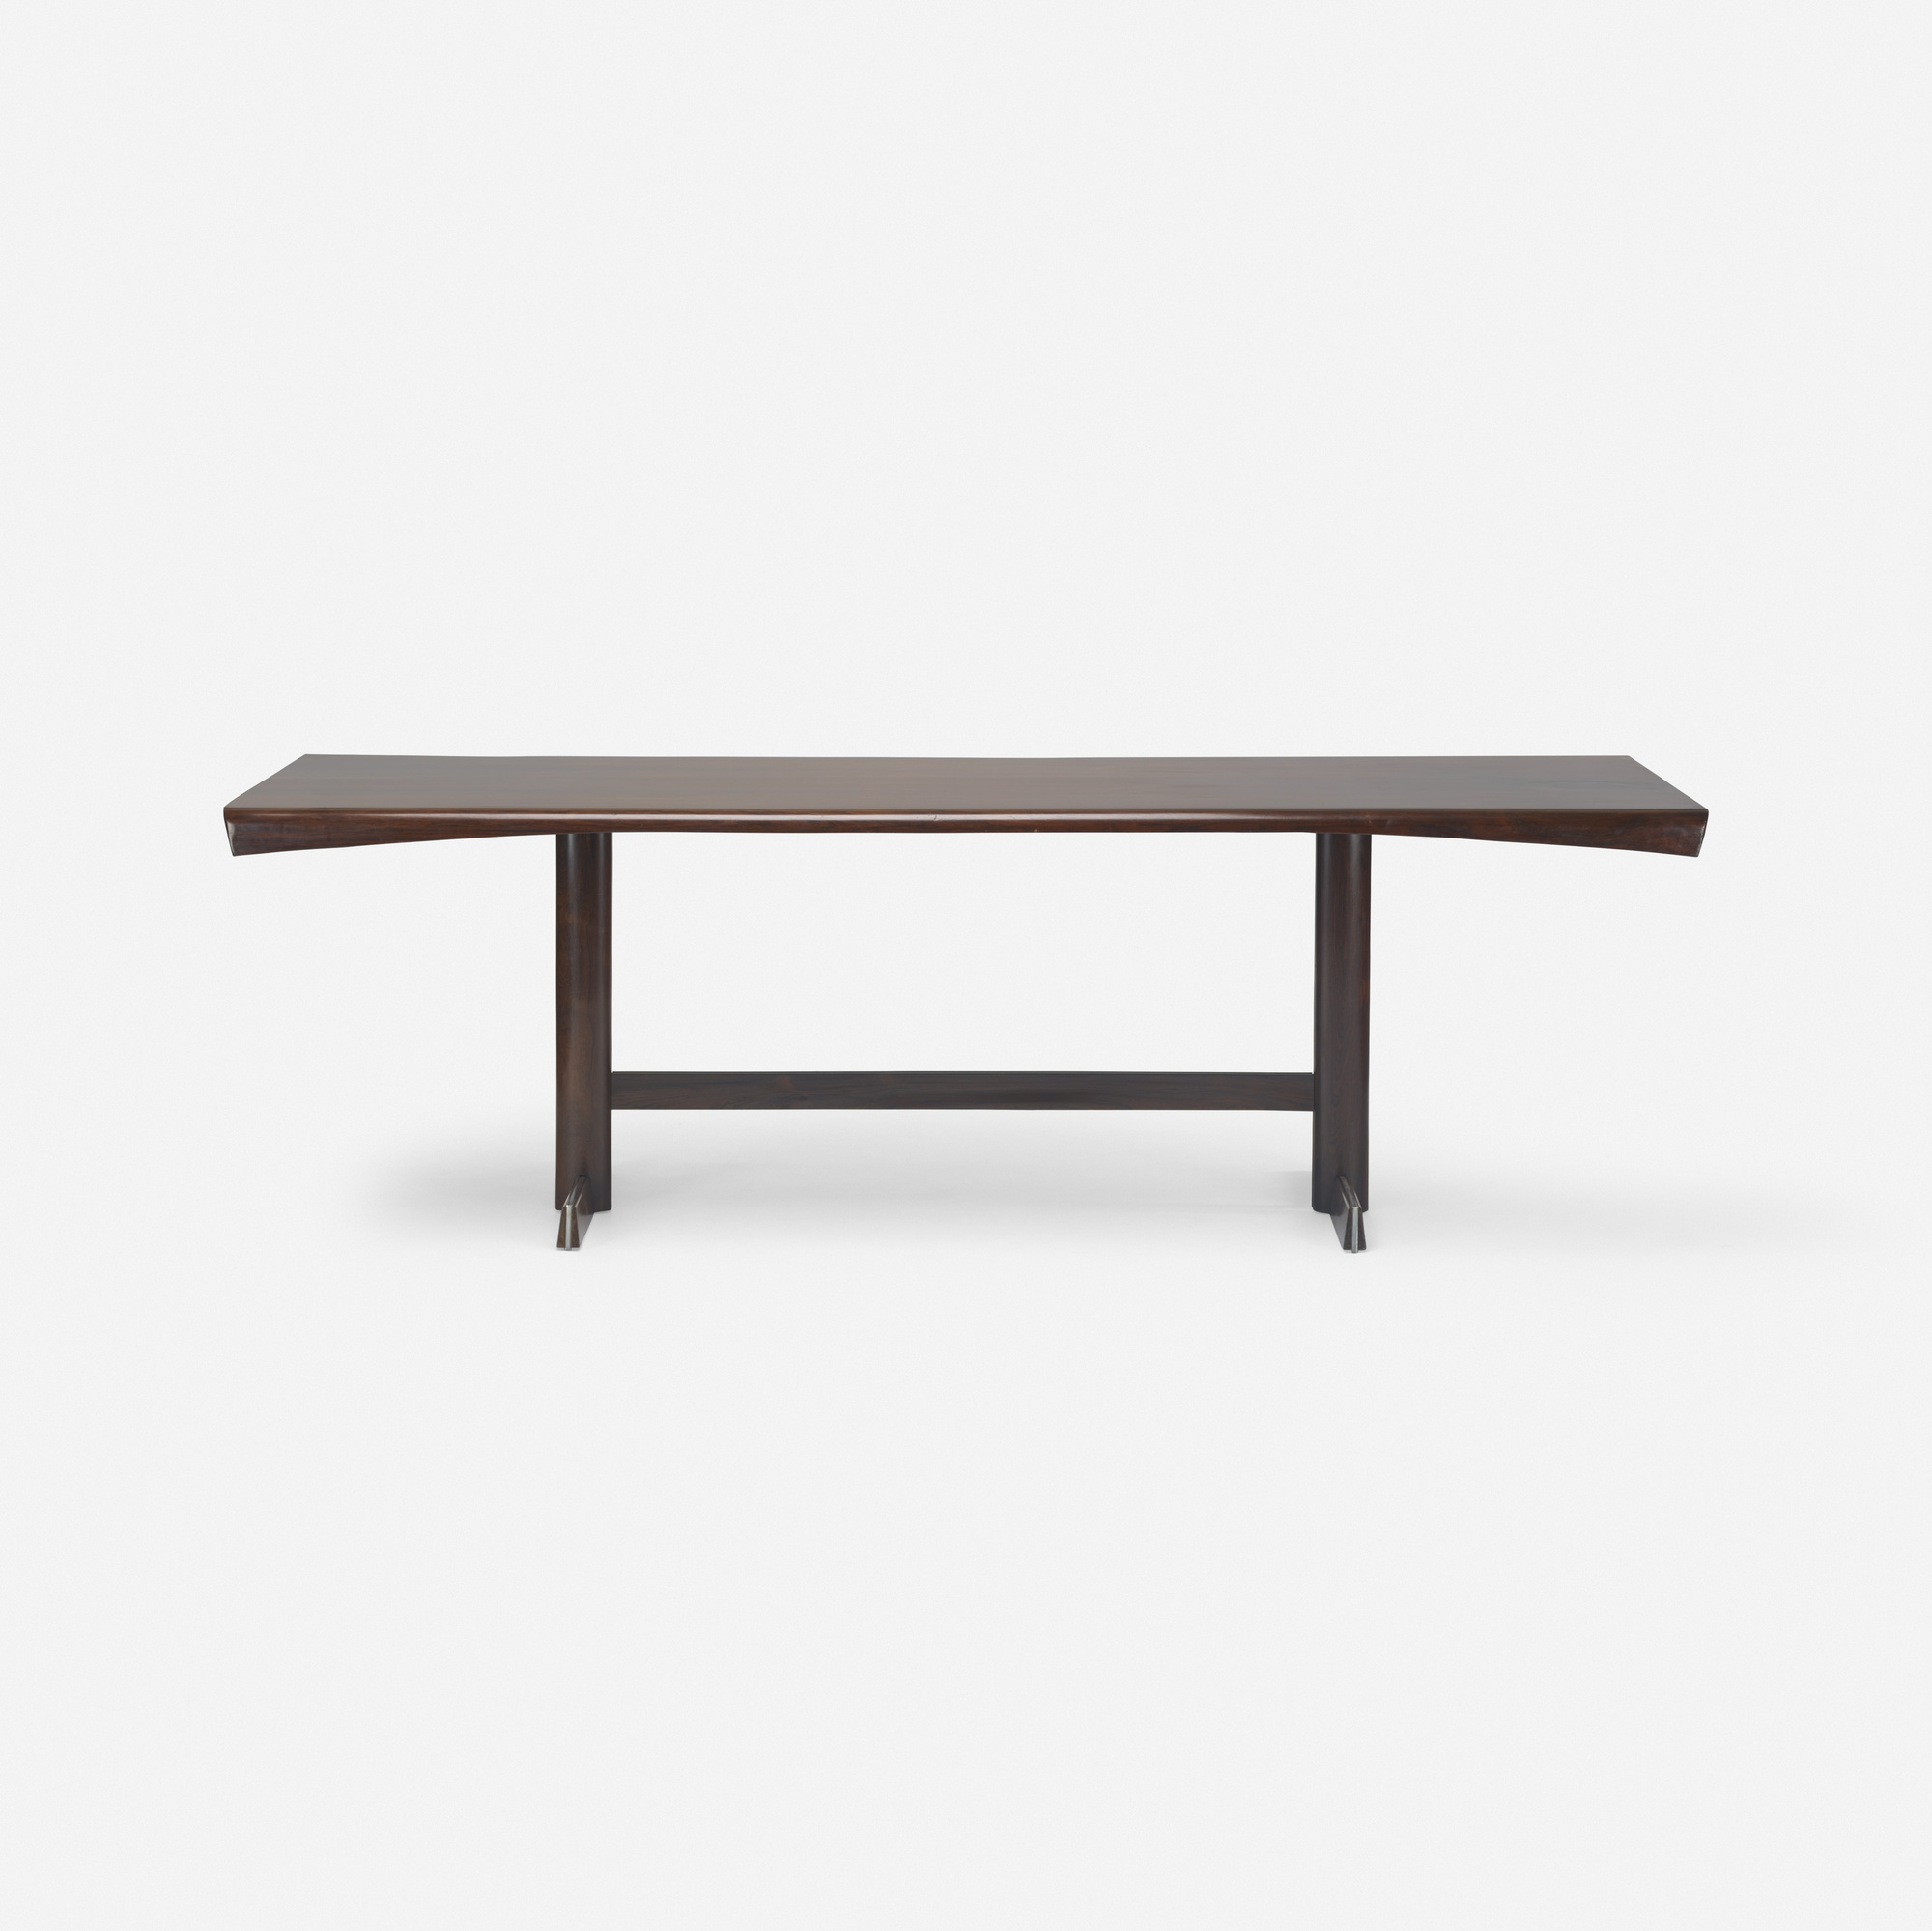 217: Jorge Zalszupin / dining table (2 of 2)